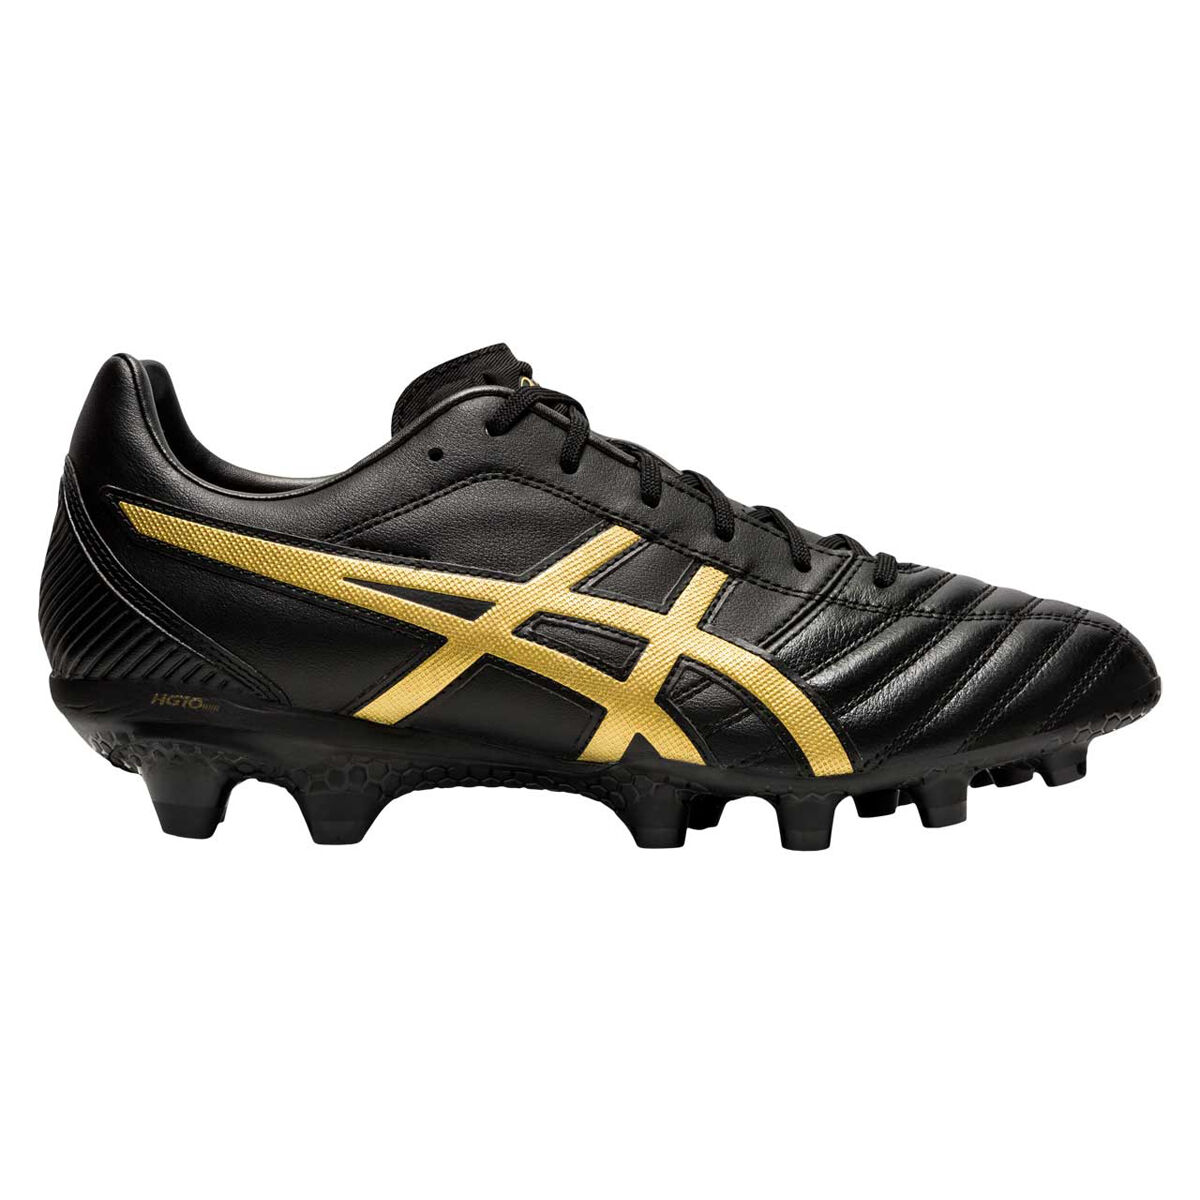 nike kicks for girls target shoes sale | Asics Lethal Flash IT Football Boots Black / Gold US Mens 14 / Womens 15.5